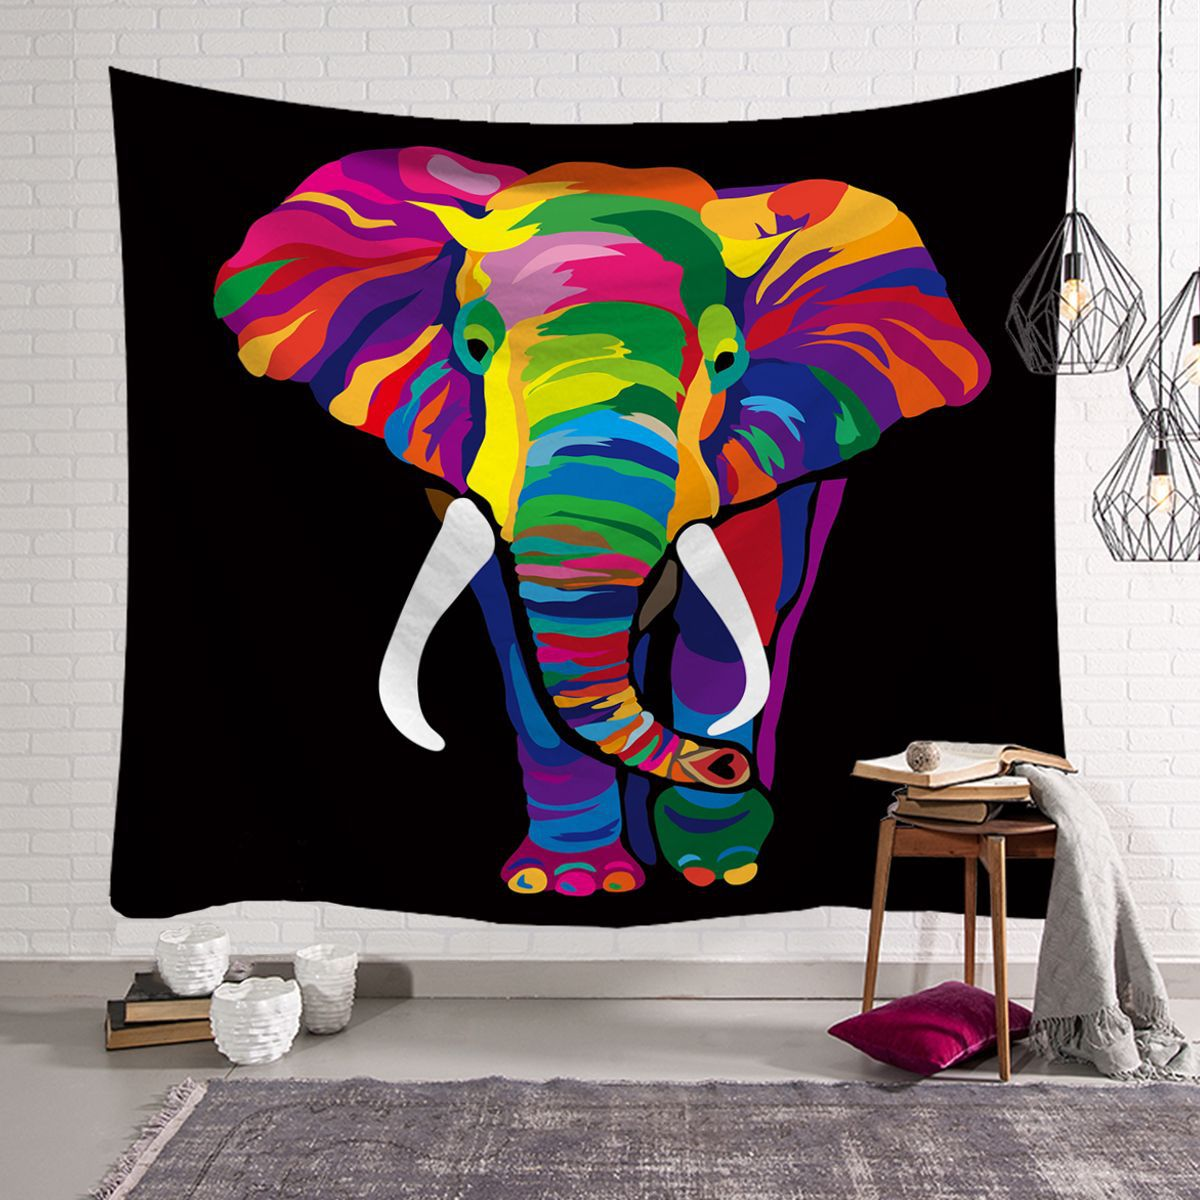 1d33b569b35d US $6.99 |Fashion Cool Chic Elegant Elephant Colored Printed Witchcraft  Decorative Hippie Mandala Macrame Bohemian Wall Hanging Tapestry-in  Tapestry ...